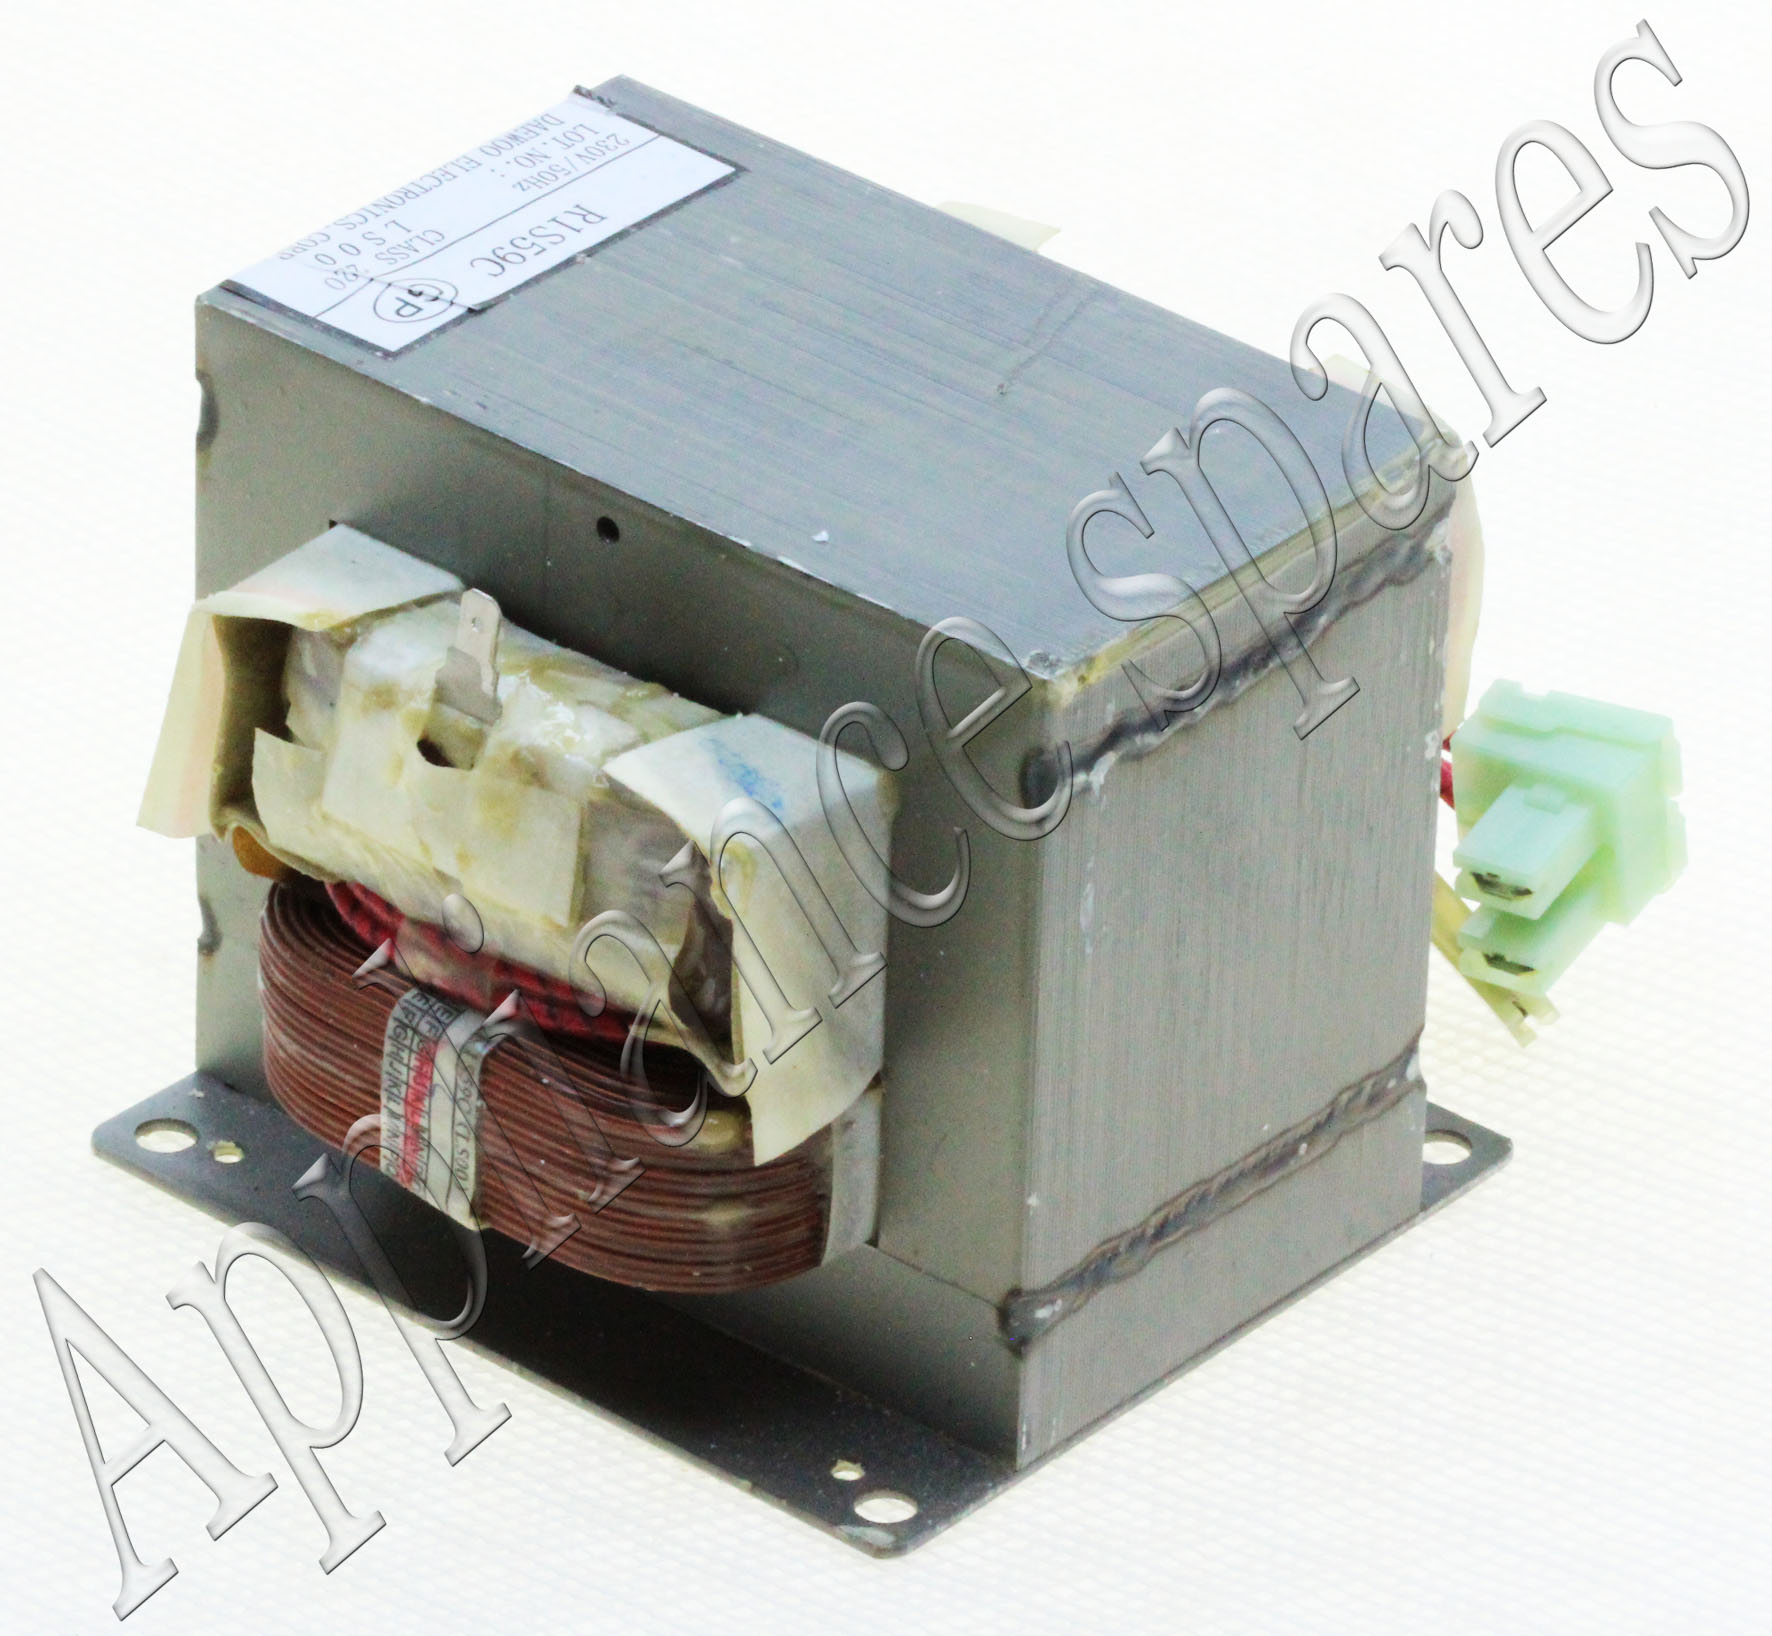 Microwave Oven Transformer Input And Output Voltage: UNIVERSAL MICROWAVE OVEN HIGH VOLTAGE TRANSFORMER 1000W